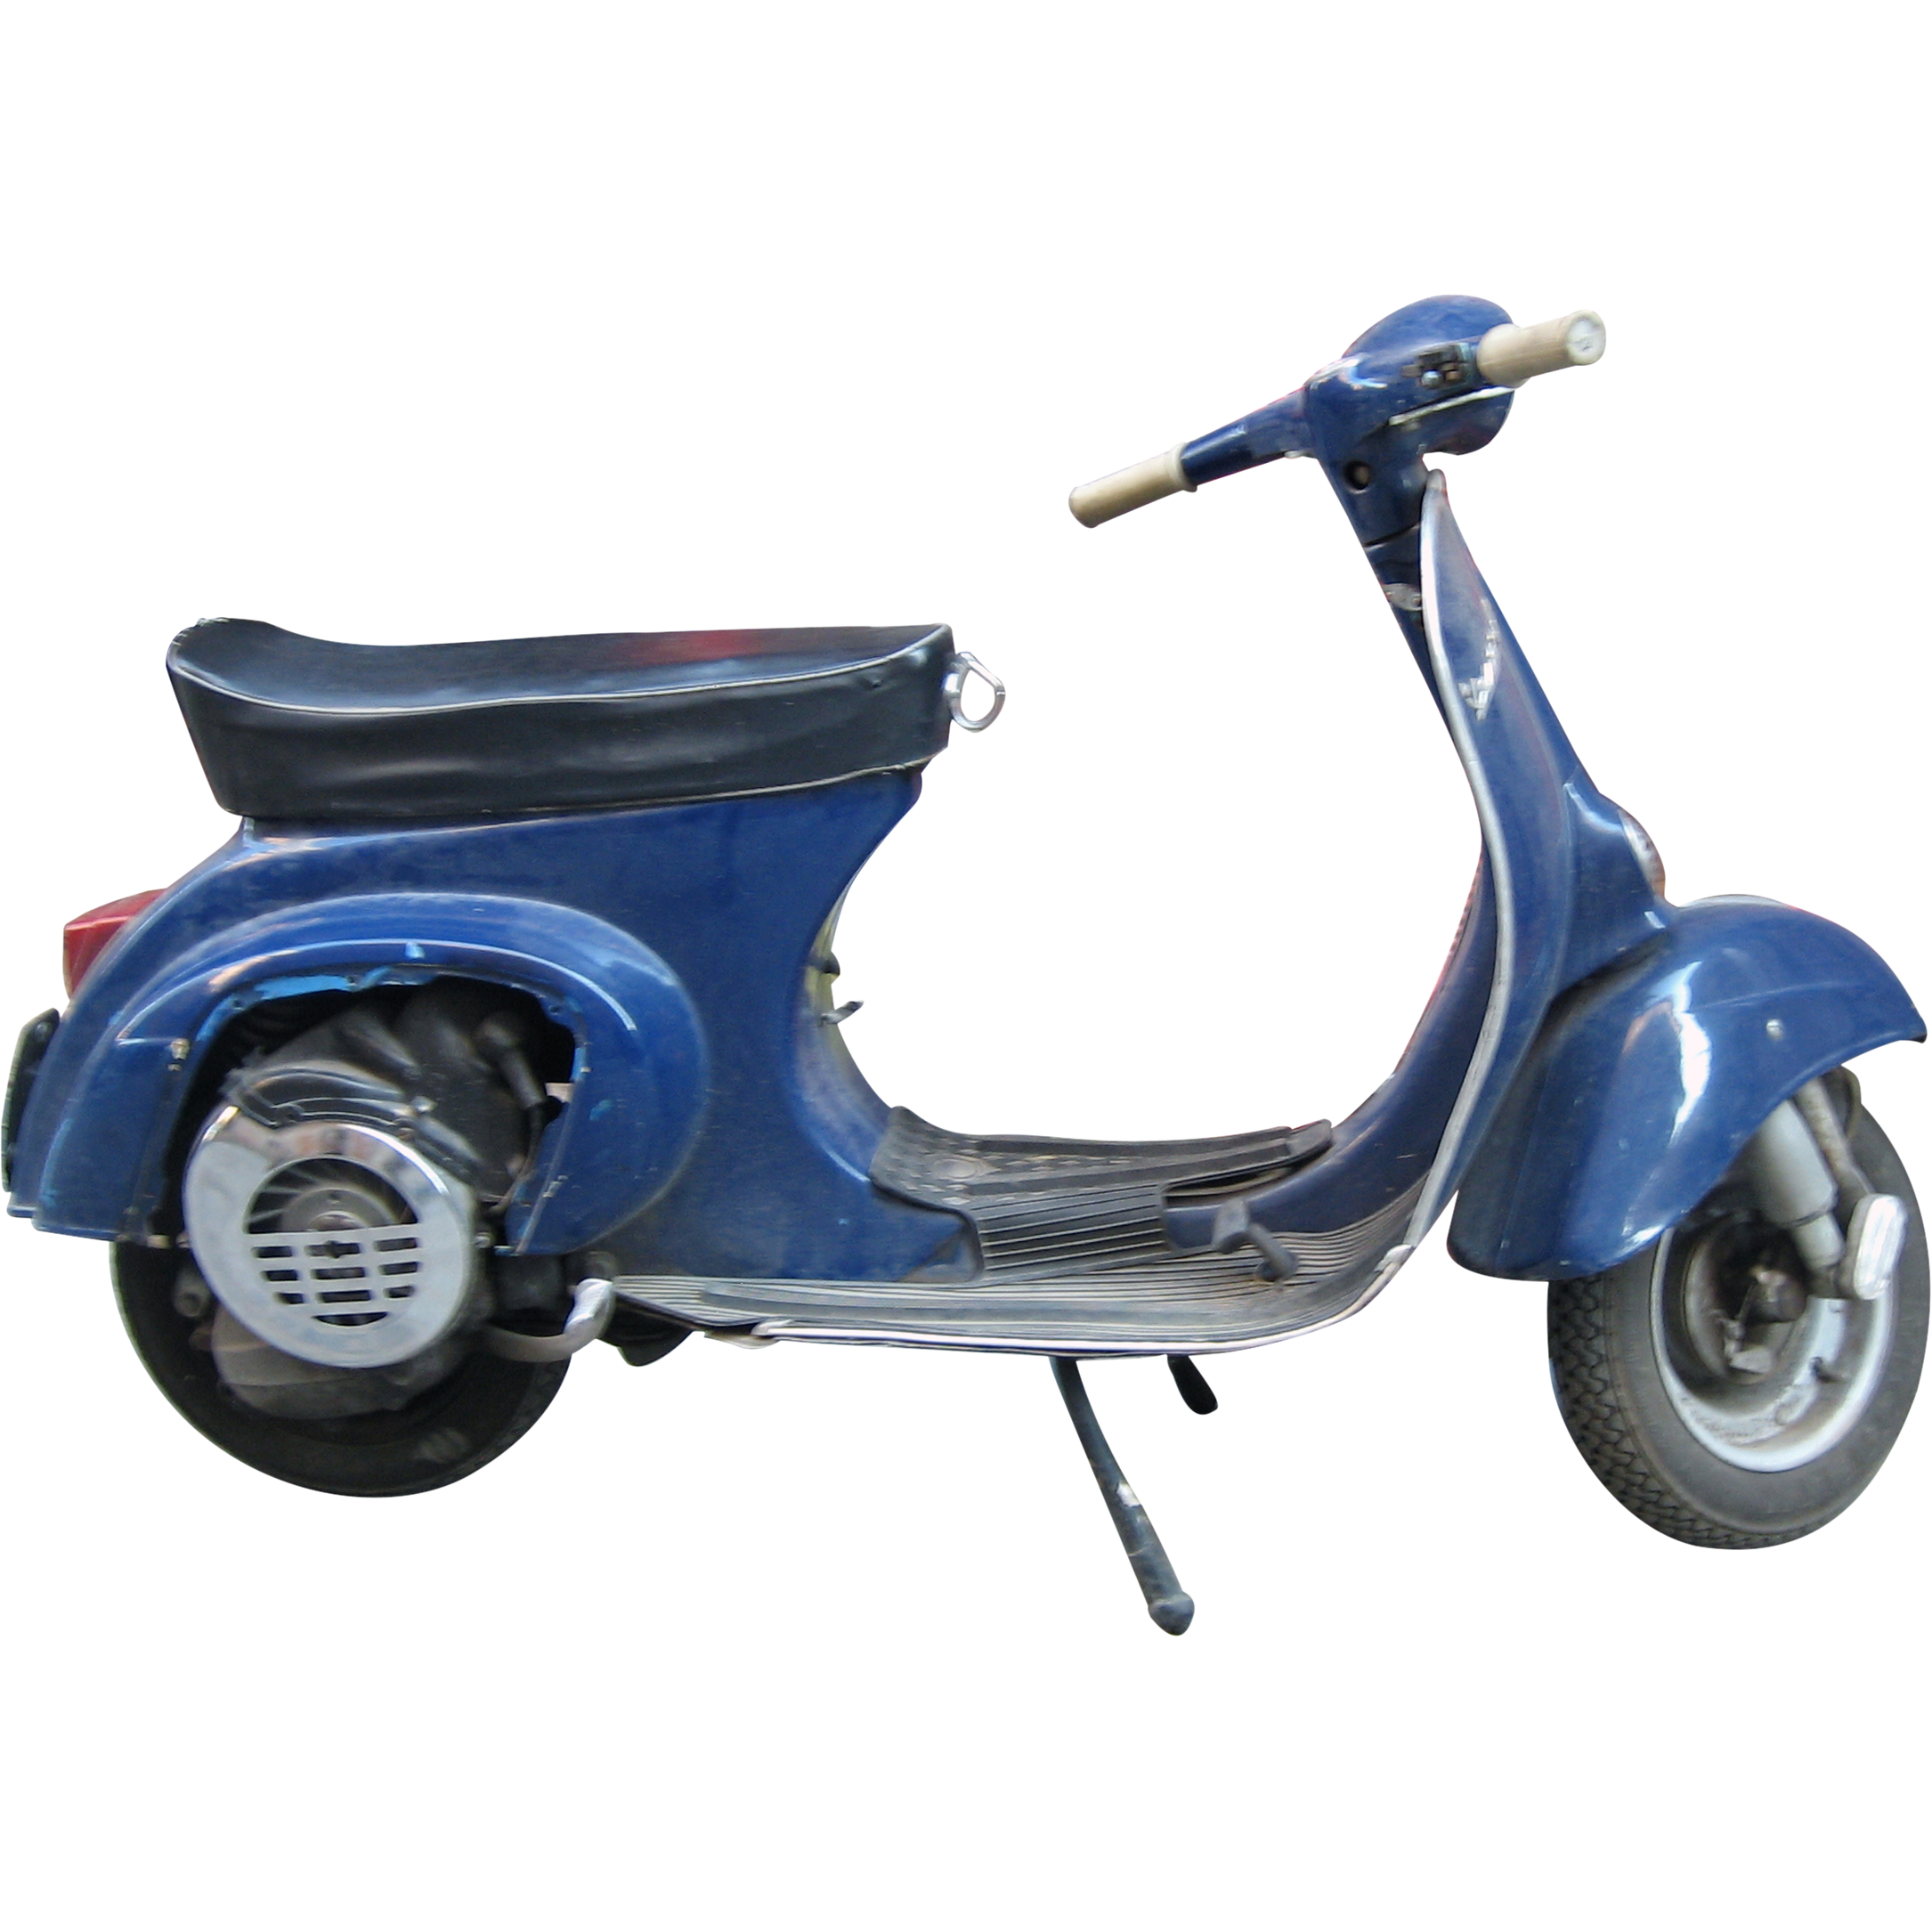 Scooter HD PNG - 120095